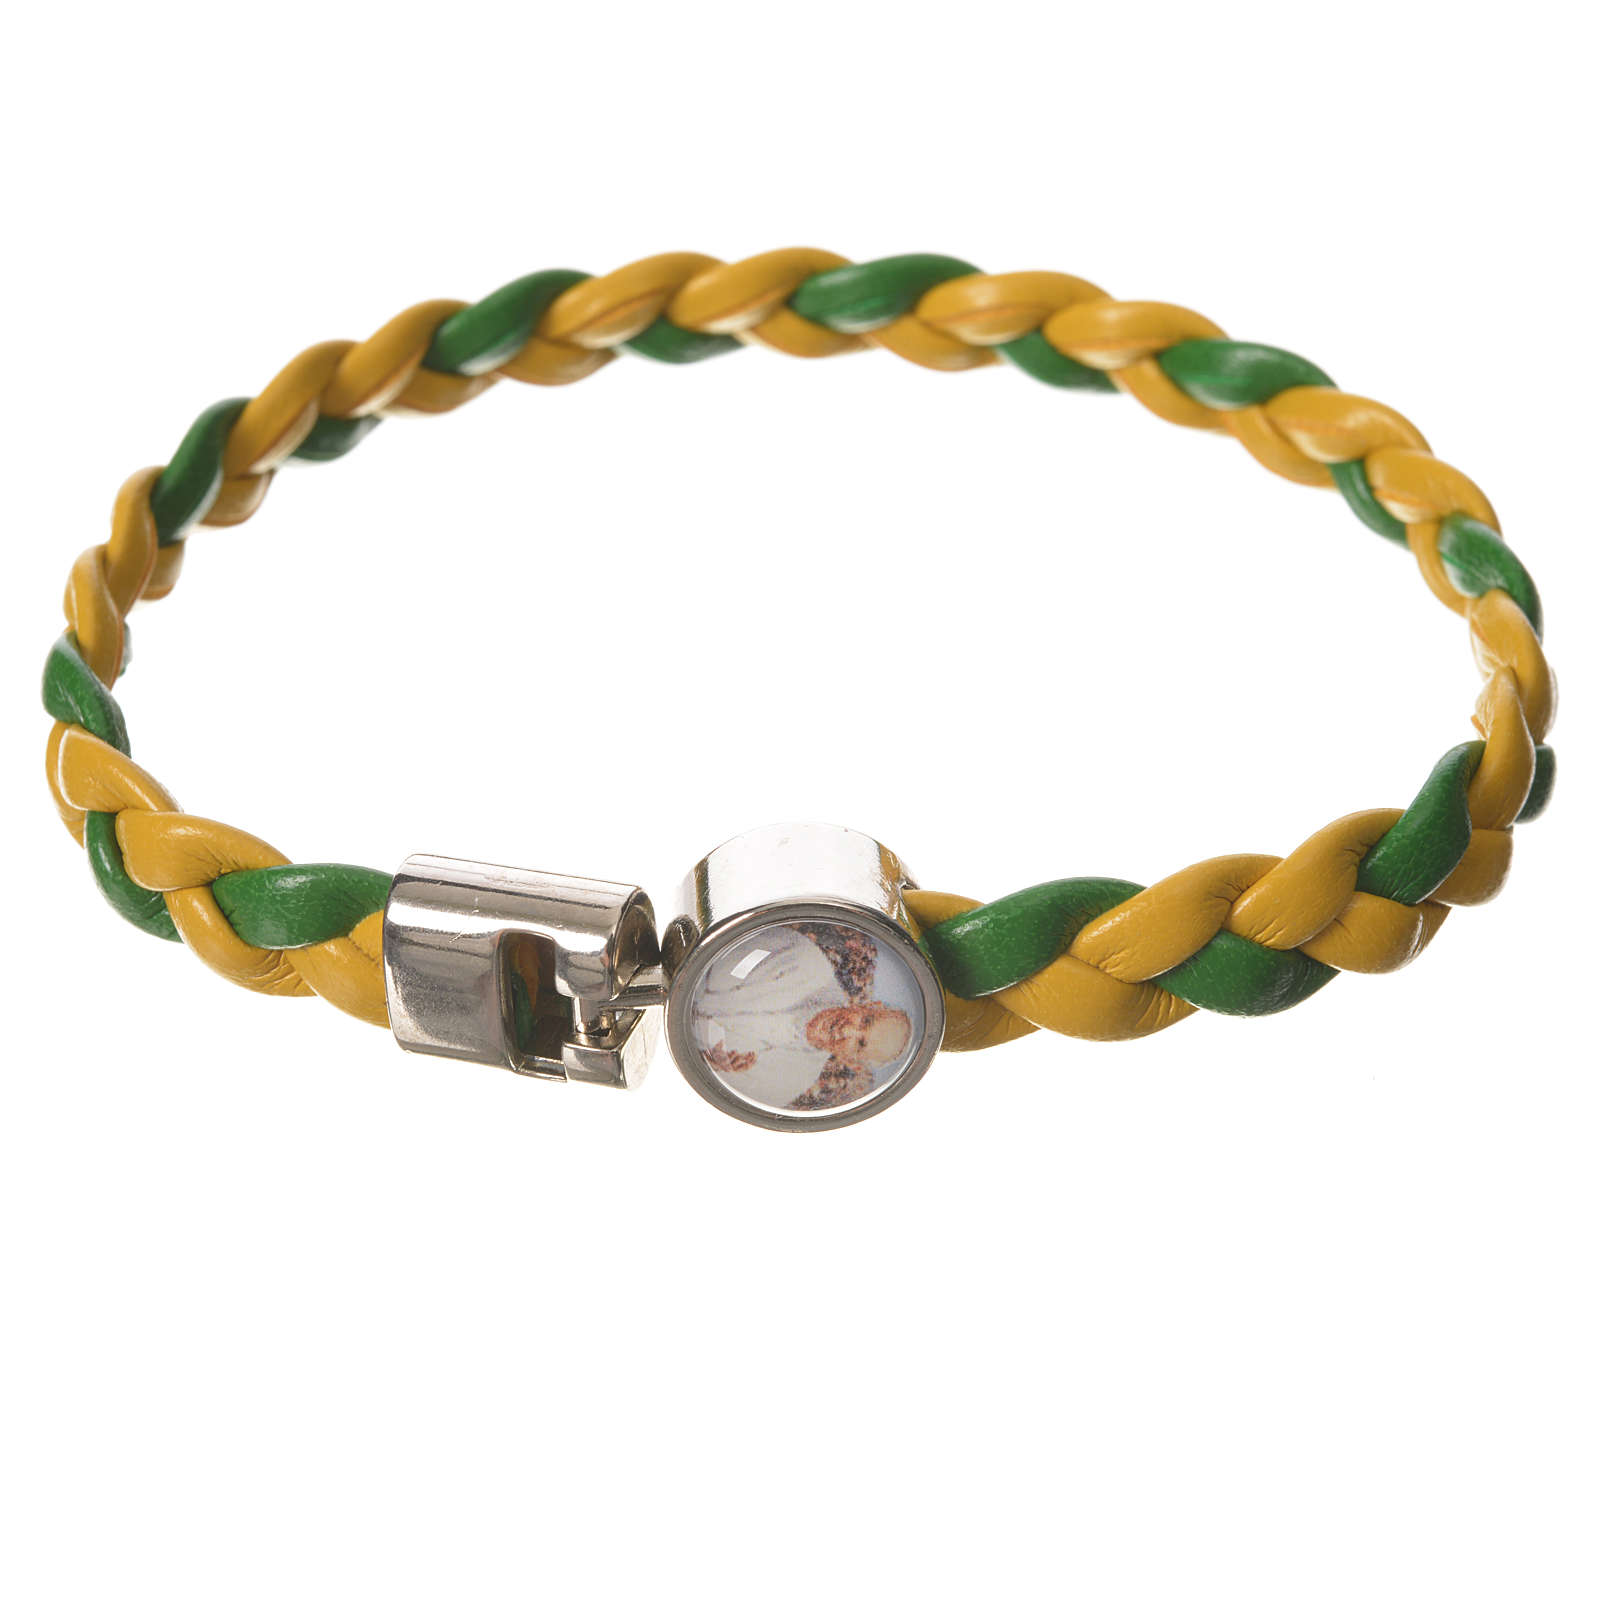 Braided bracelet, 20cm green and yellow with Pope Francis 4